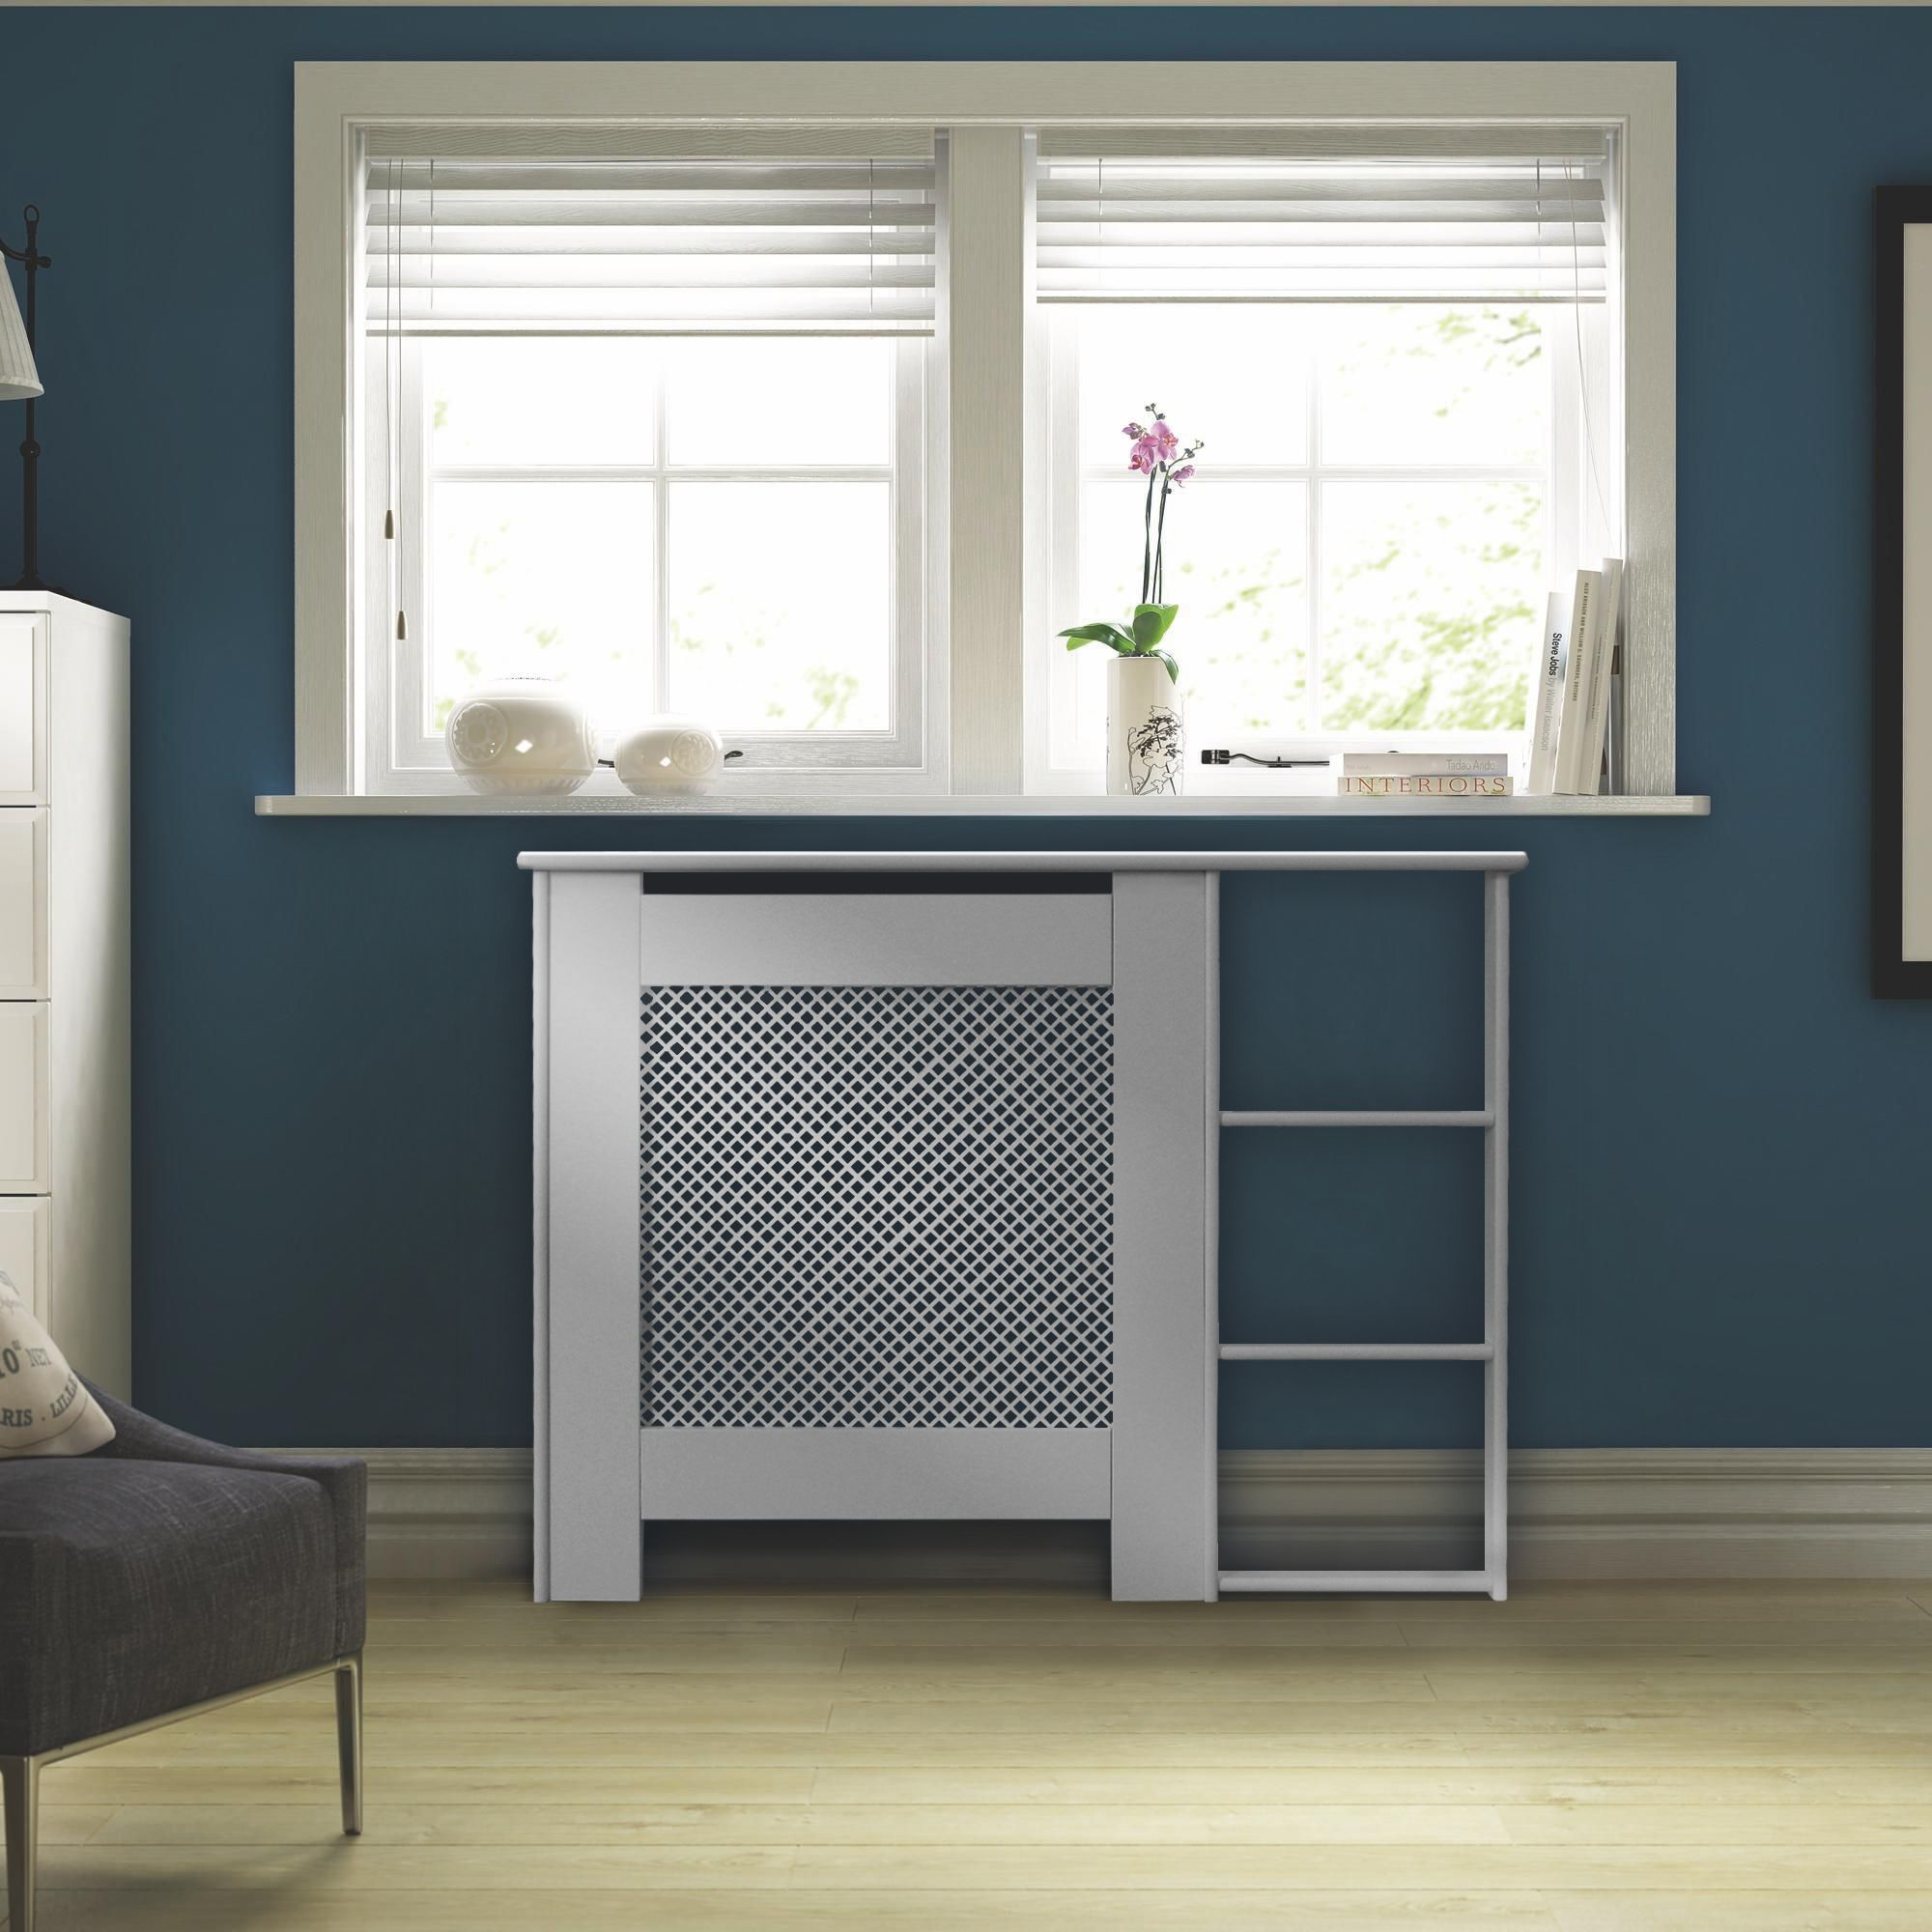 mayfair mini white painted end shelf radiator cover departments rh pinterest com